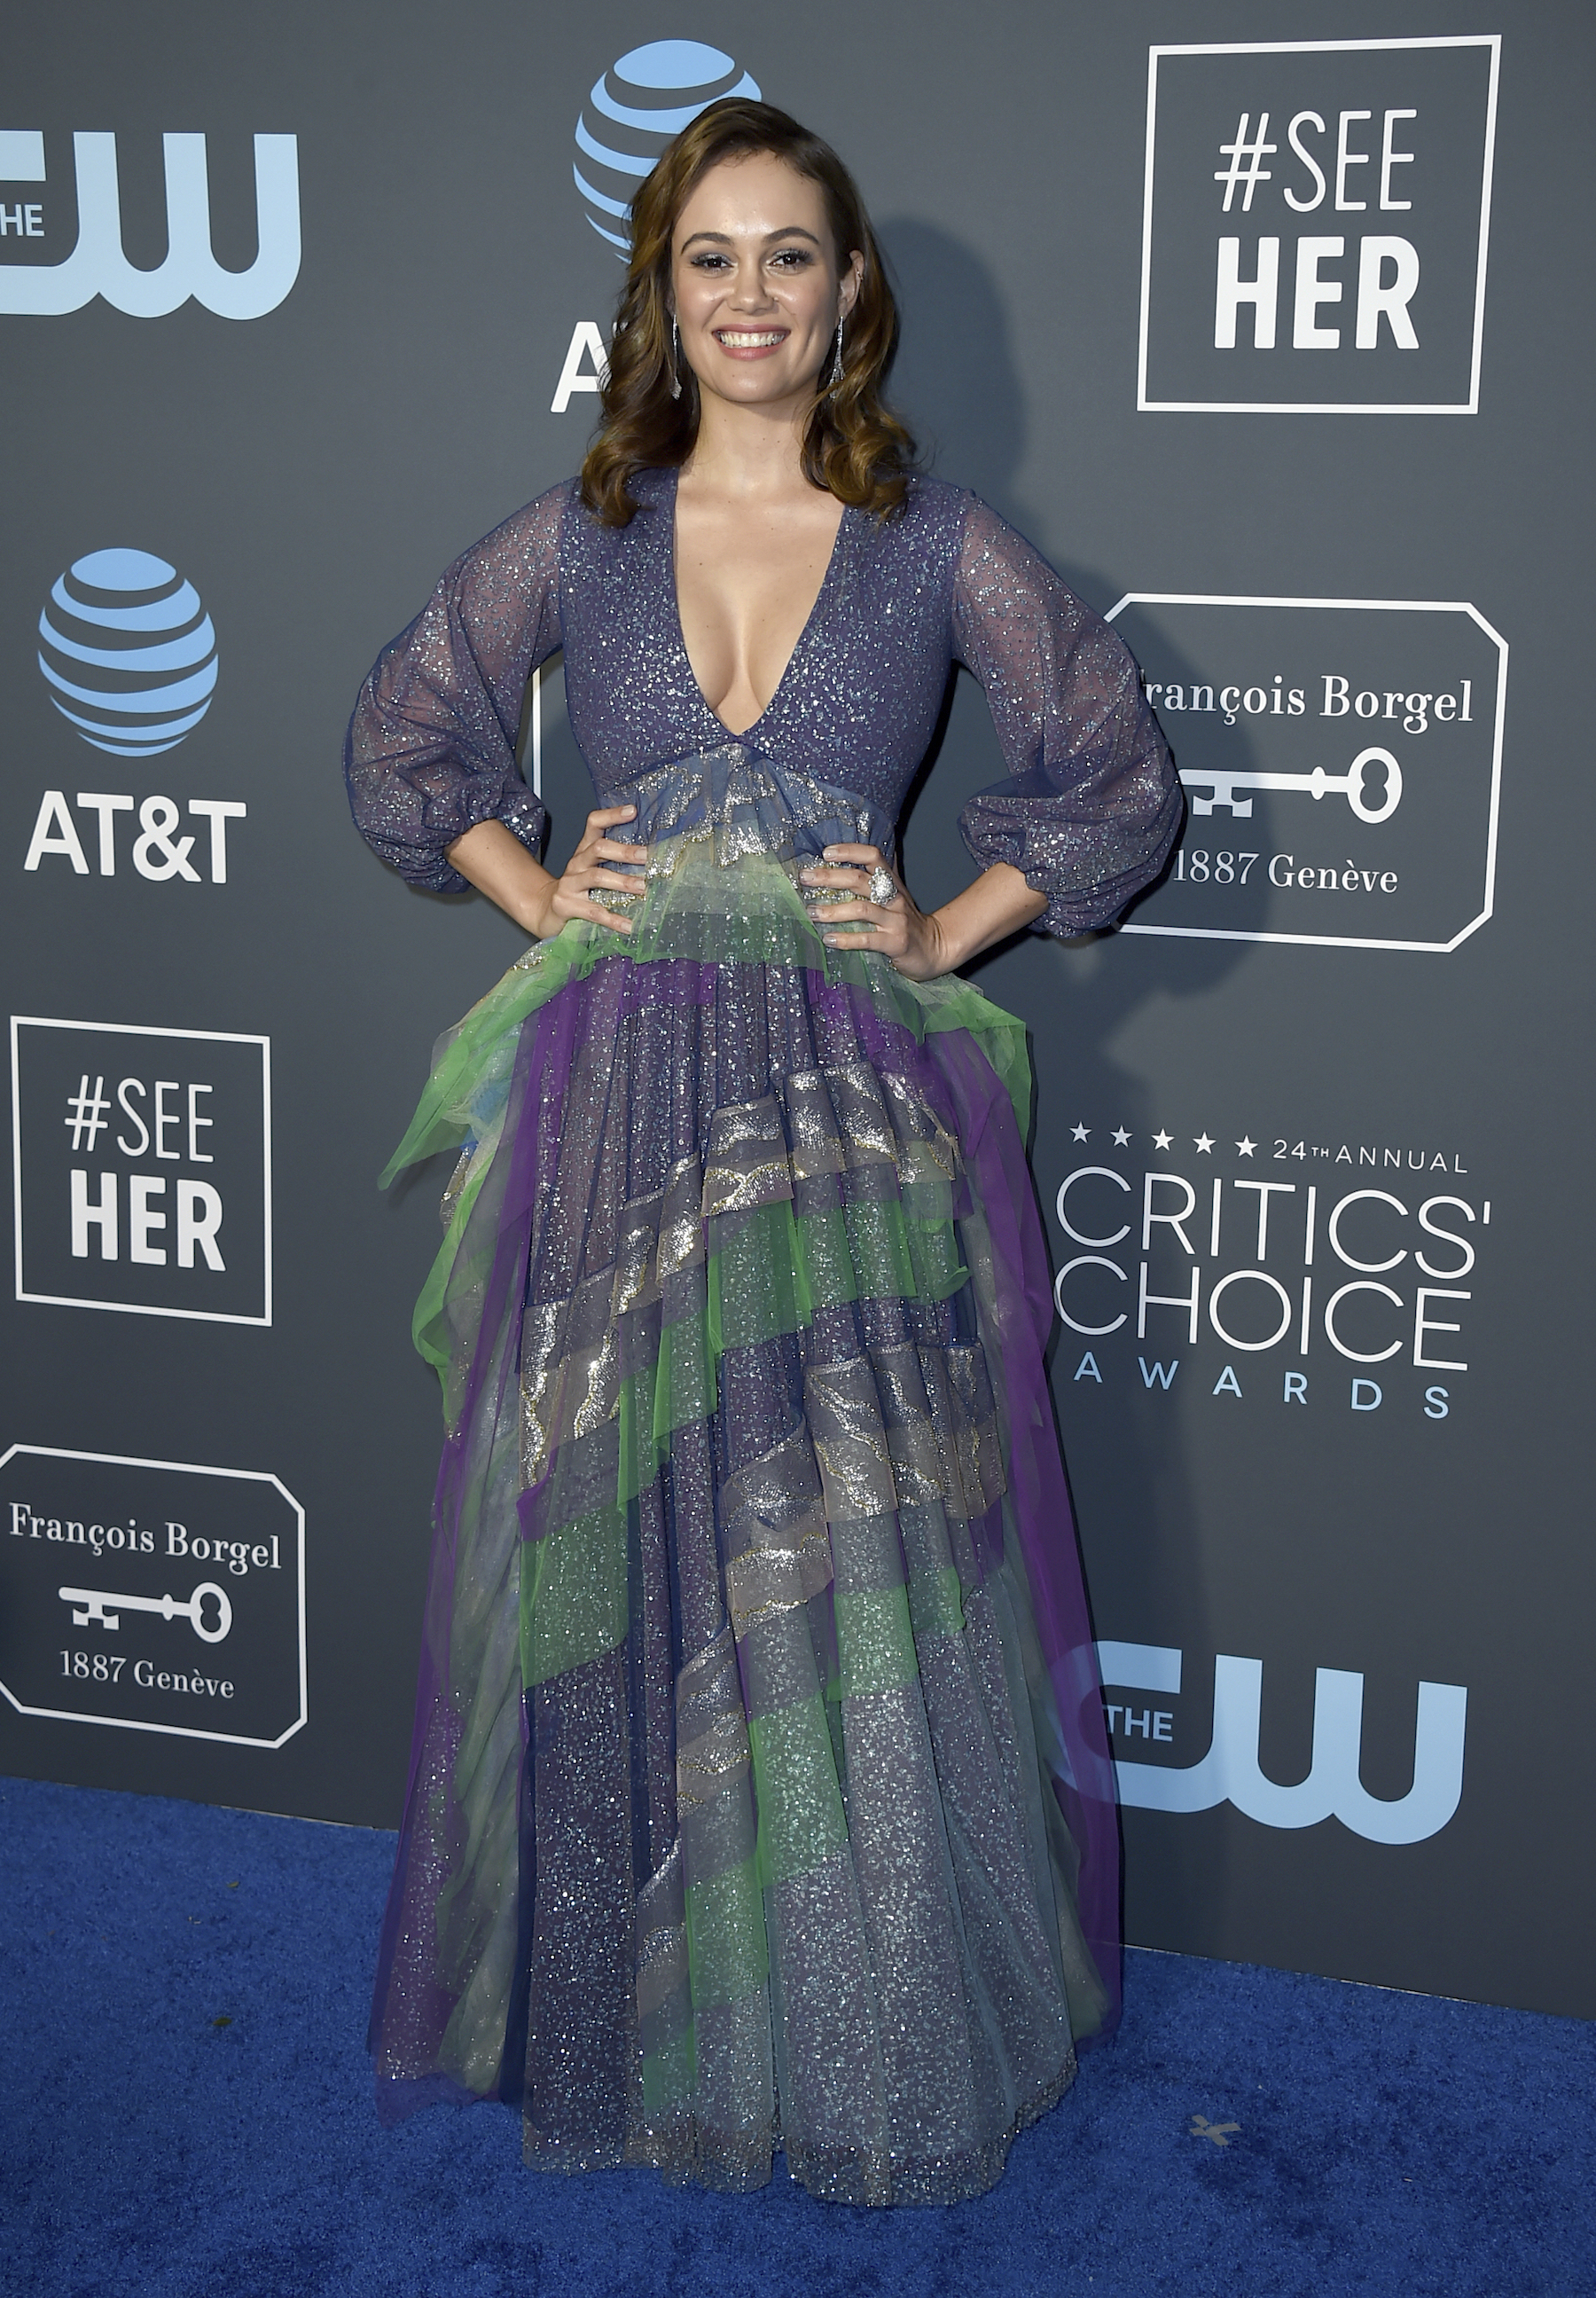 "<div class=""meta image-caption""><div class=""origin-logo origin-image ap""><span>AP</span></div><span class=""caption-text"">Dina Shihabi arrives at the 24th annual Critics' Choice Awards on Sunday, Jan. 13, 2019, at the Barker Hangar in Santa Monica, Calif. (Jordan Strauss/Invision/AP)</span></div>"